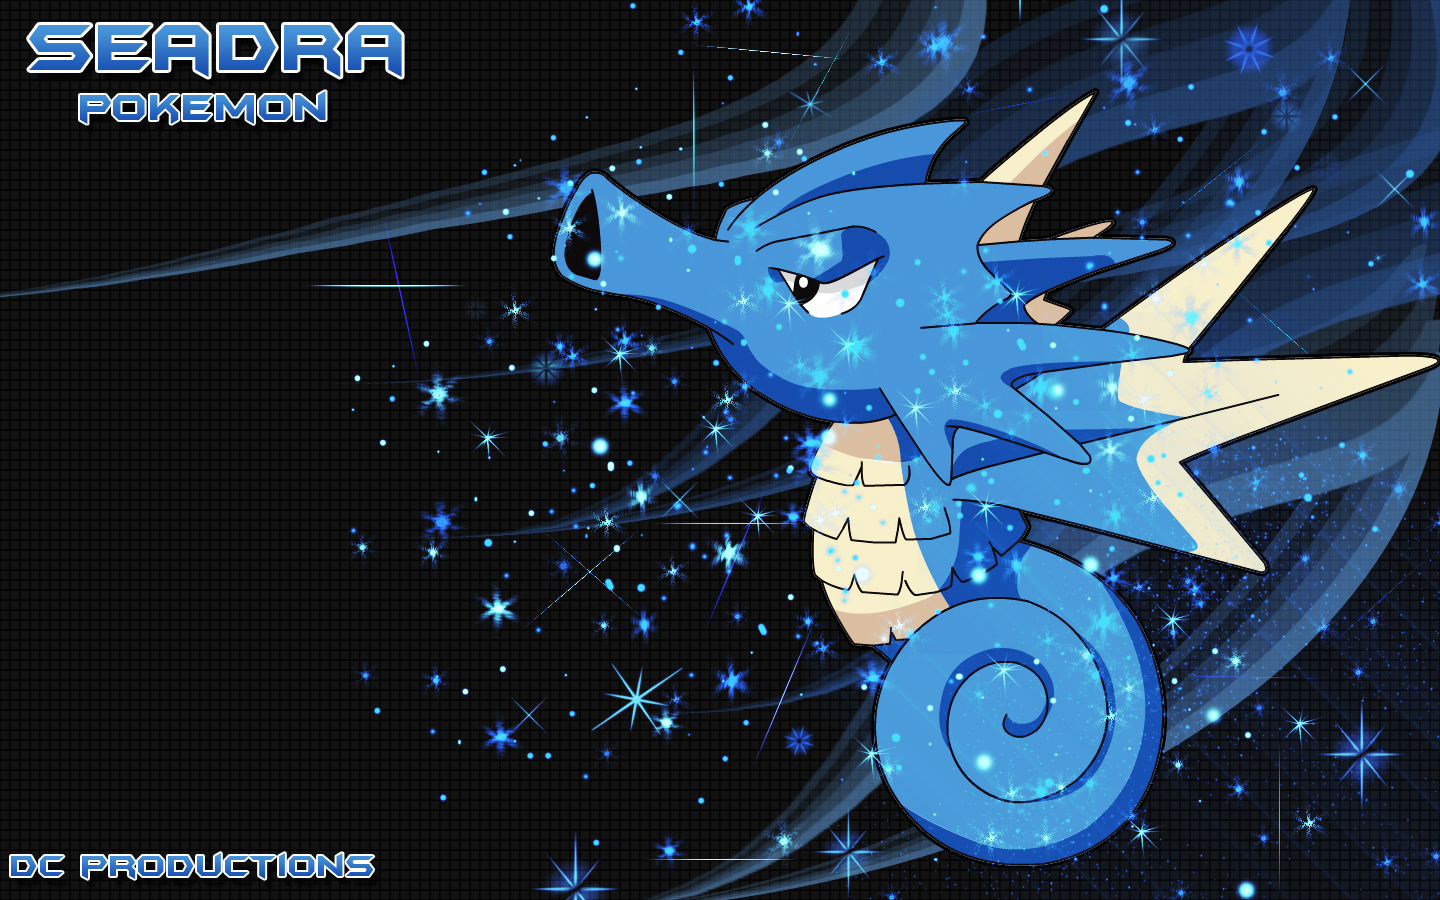 lets play a game Seadra_Sparkle_Wallpaper_by_demoncloud